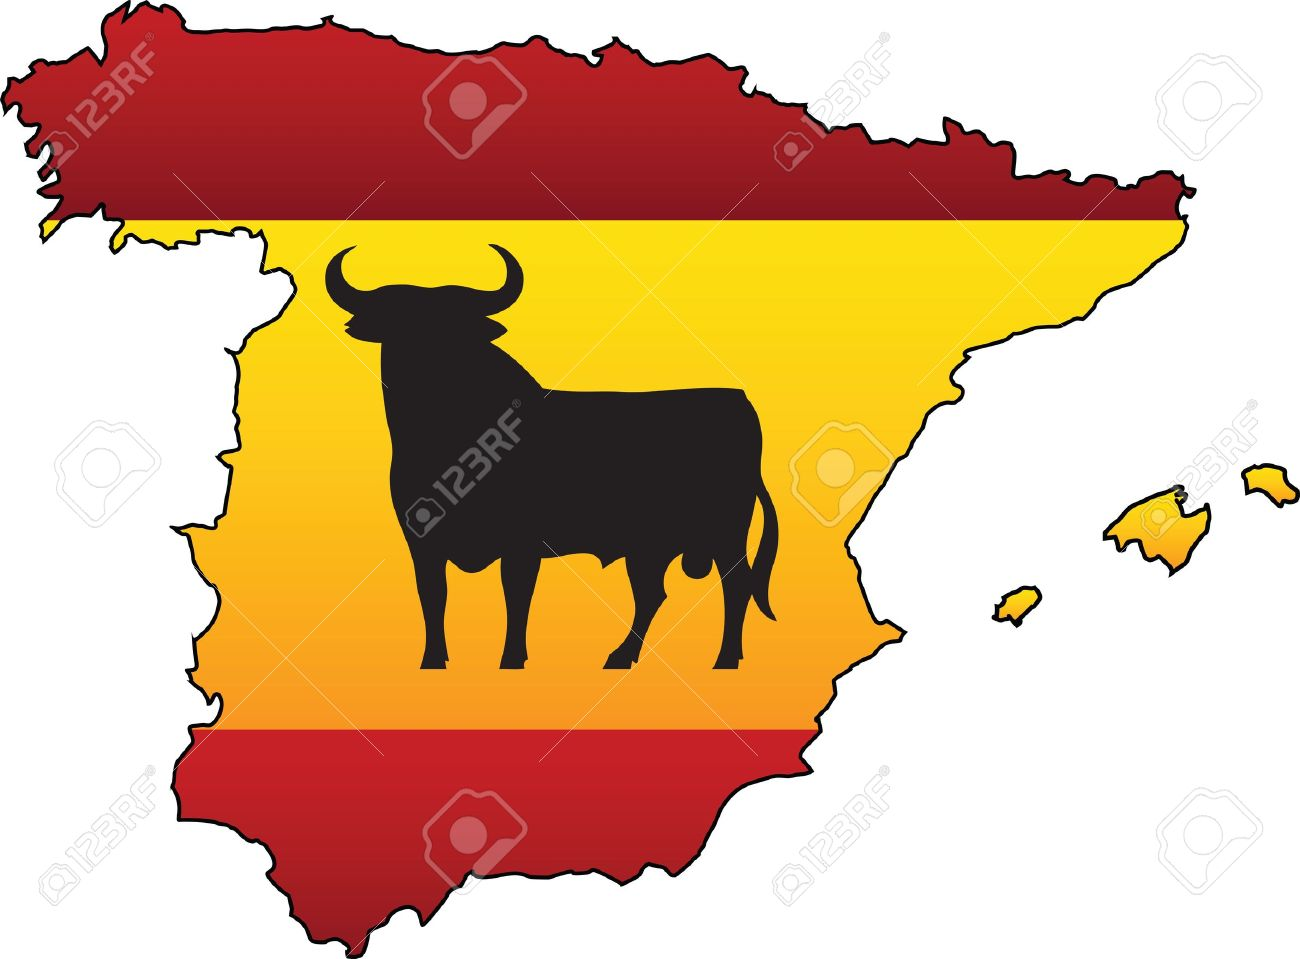 Spanish Flag Country Silhouette and Symbol Combination Stock Vector - 19846254